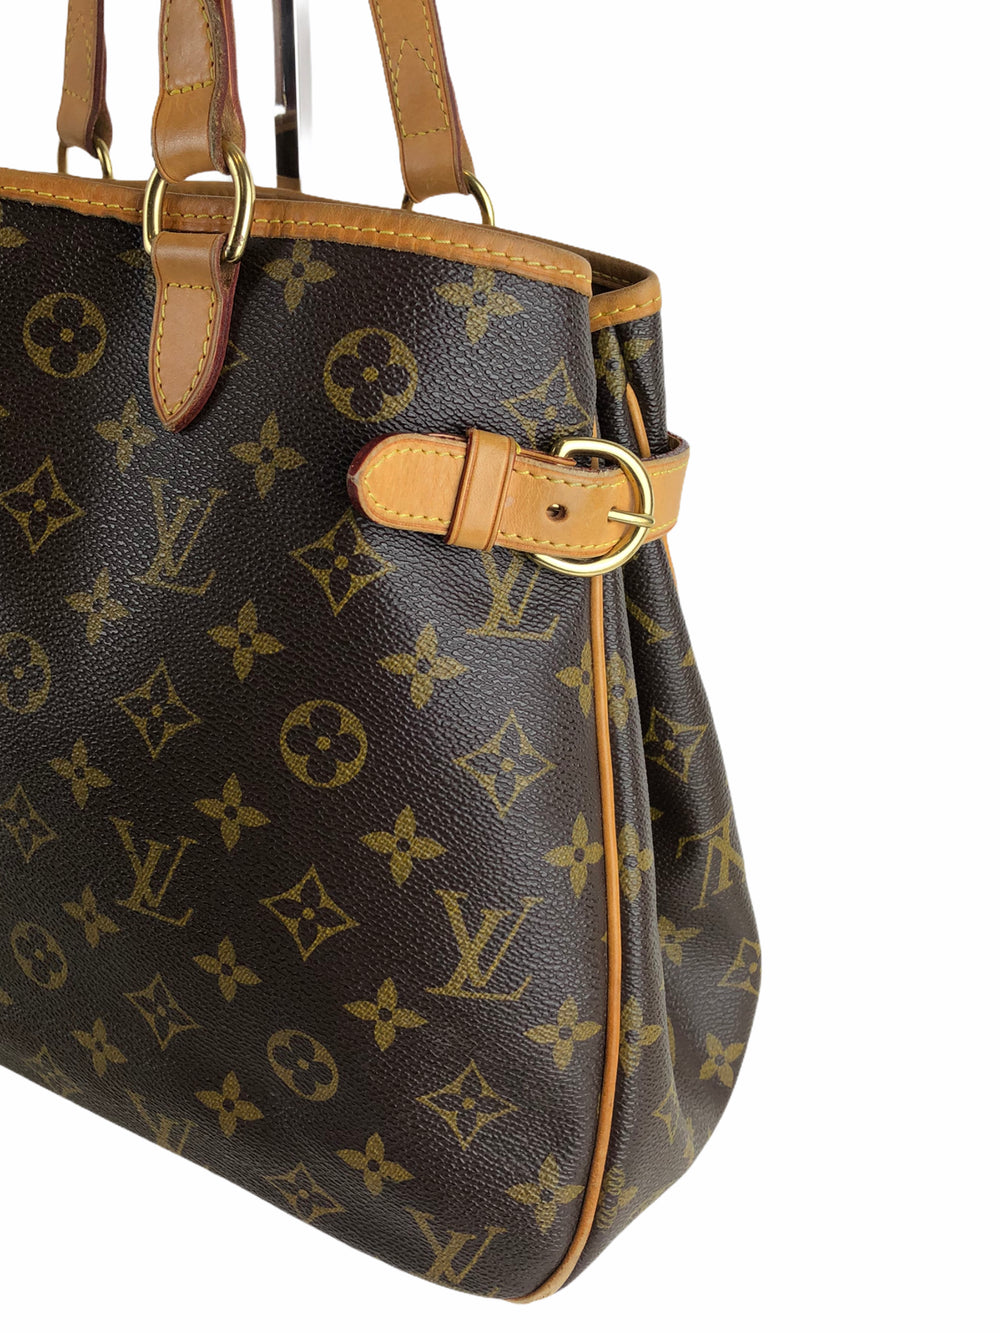 Louis Vuitton Monogram Canvas Batignolles PM Tote - As Seen on Instagram 27/09/2020